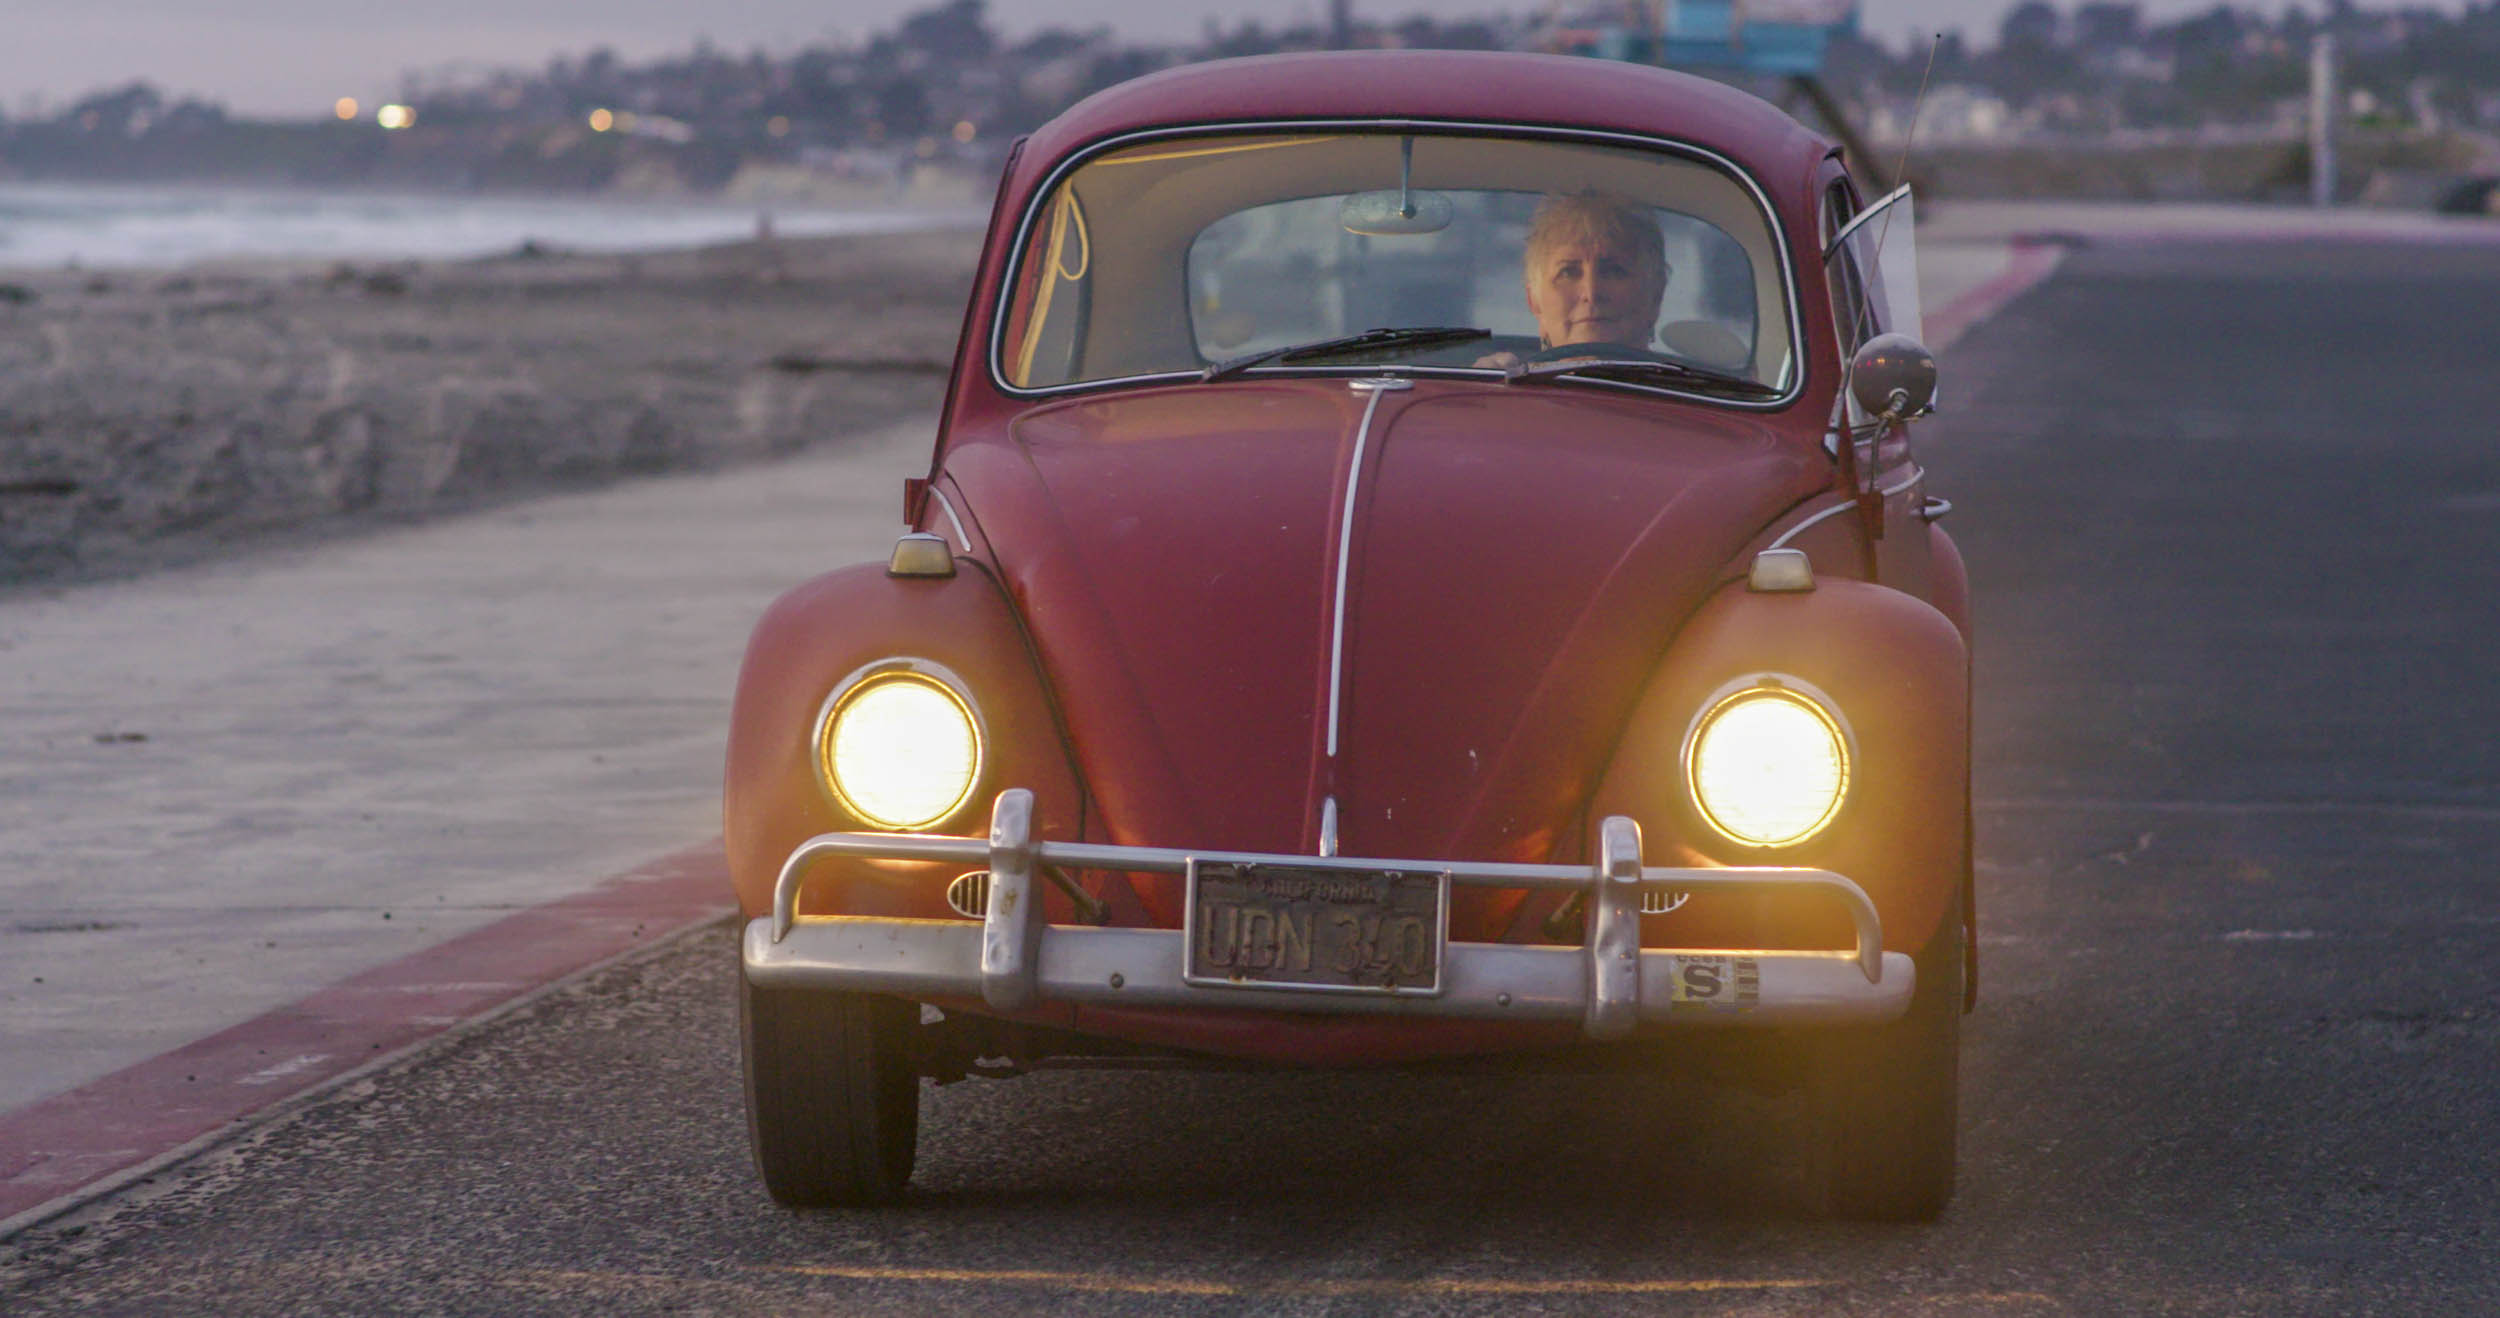 1967 Volkswagen Beetles front headlights on